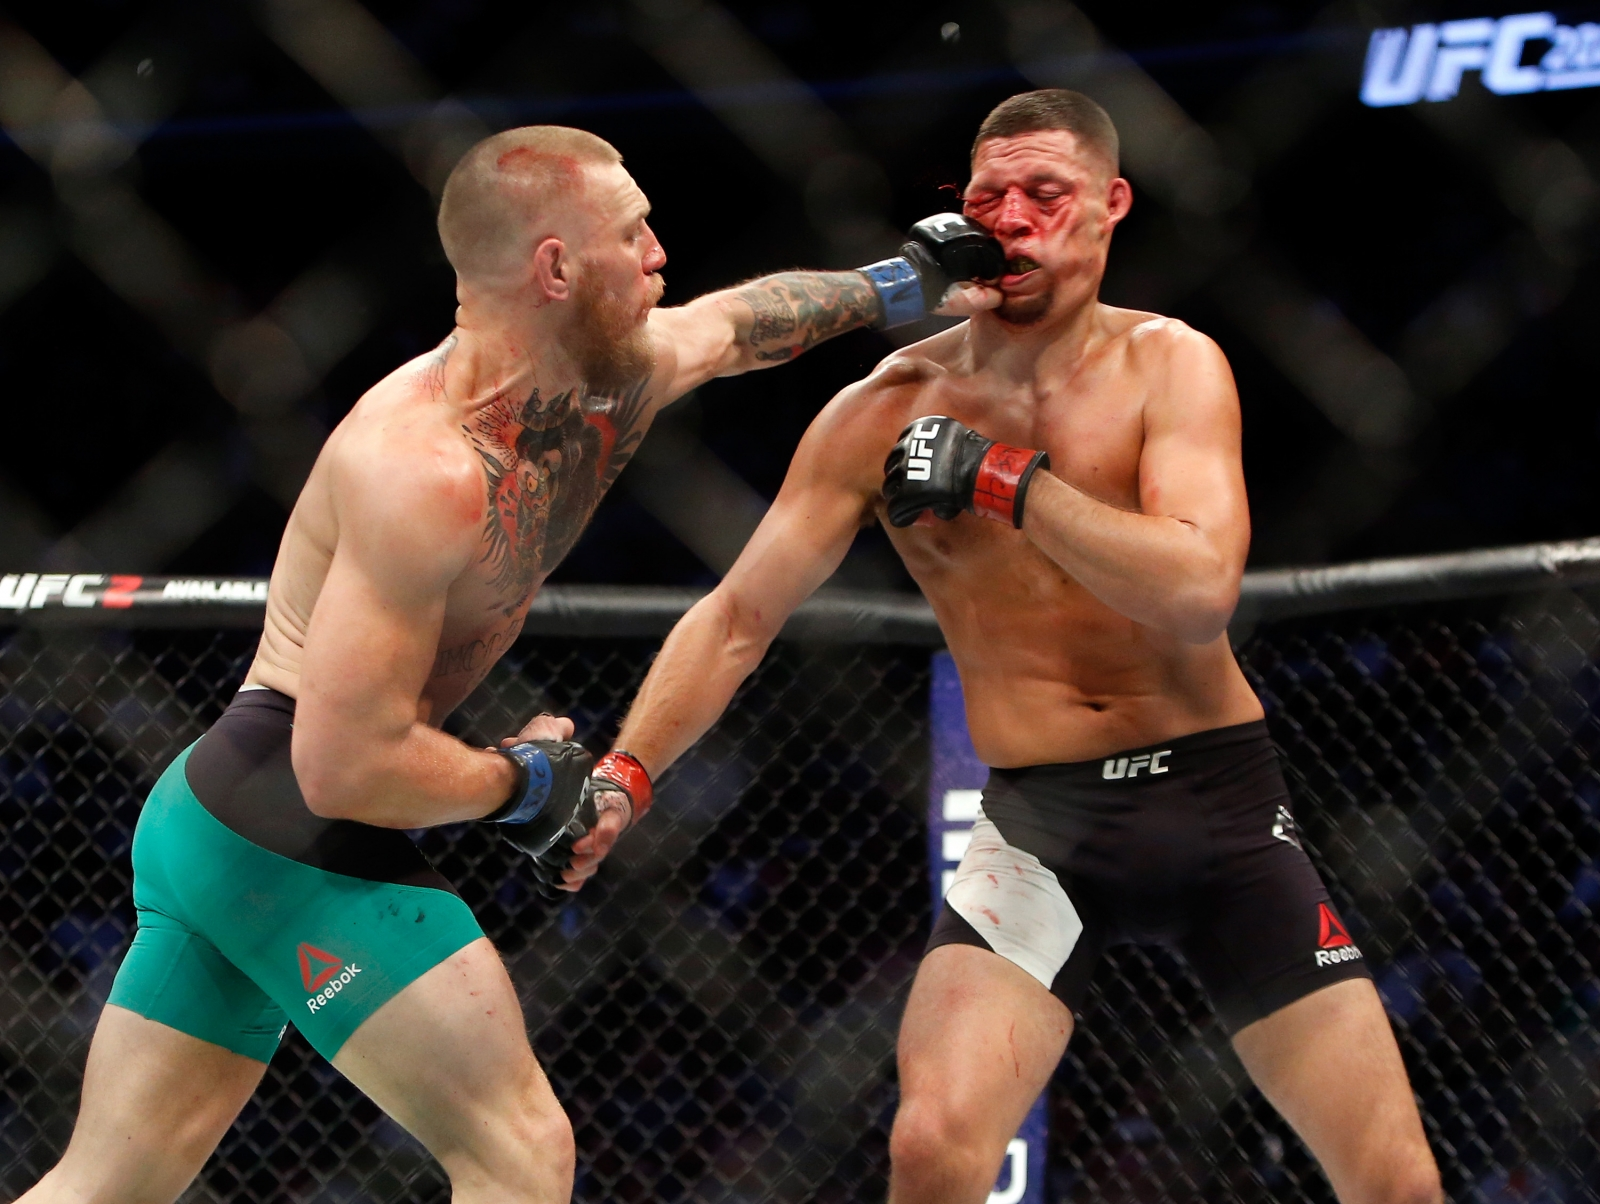 Conor McGregor vs Nate Diaz II